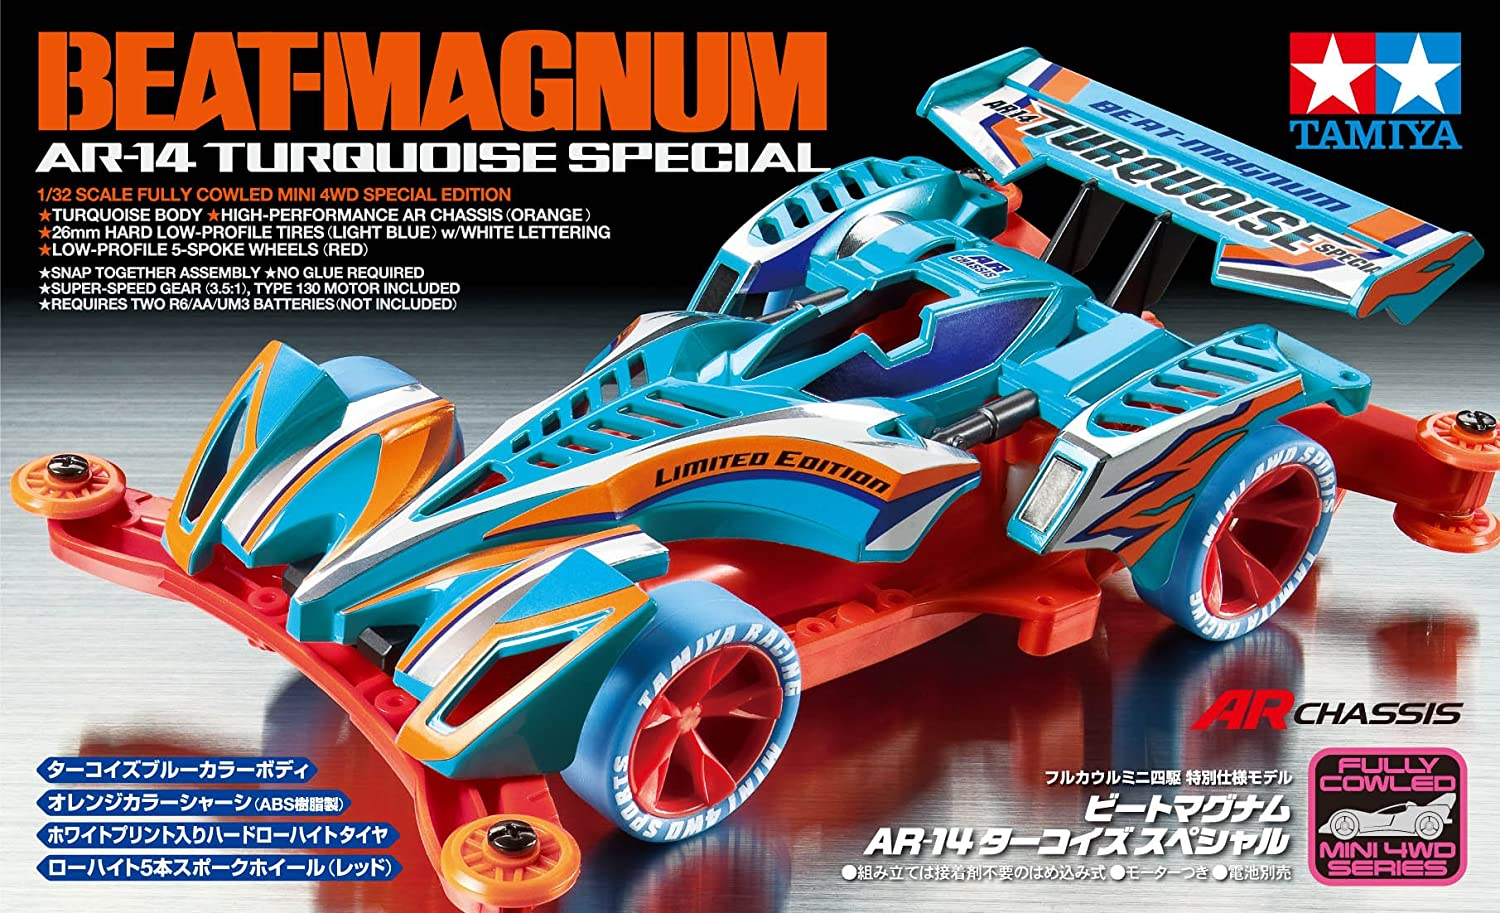 Full cowl four wheel drive mini special specification model beat Magnum AR-14 turquoise Special (AR Chassis)